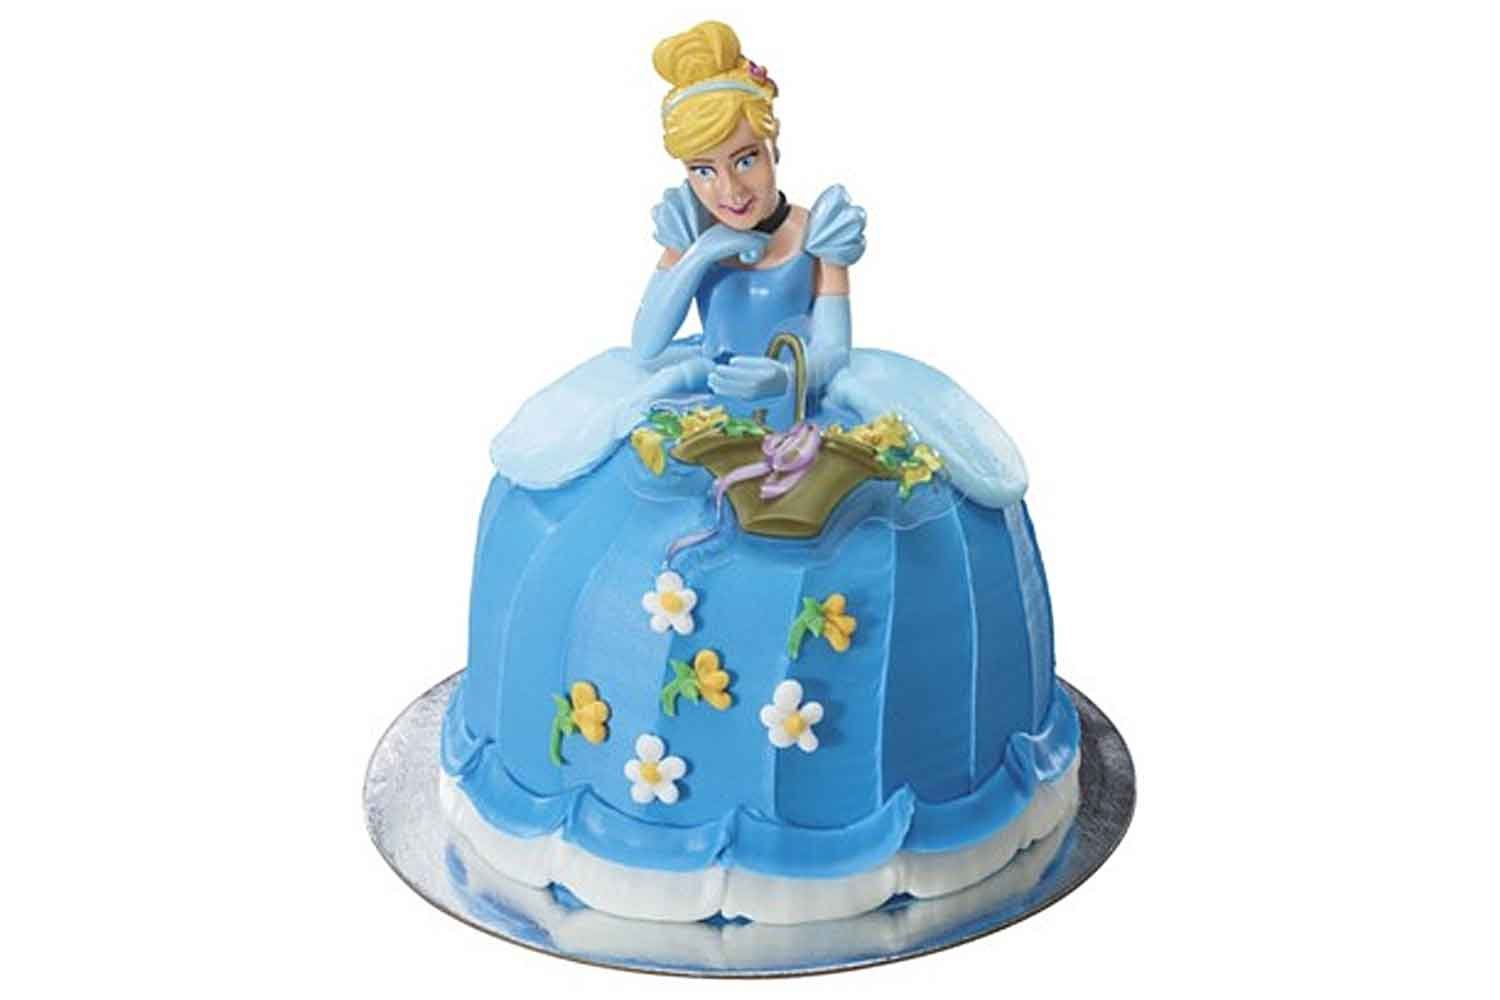 Disney Princess Cake Decorations Birthday Girls Wikii